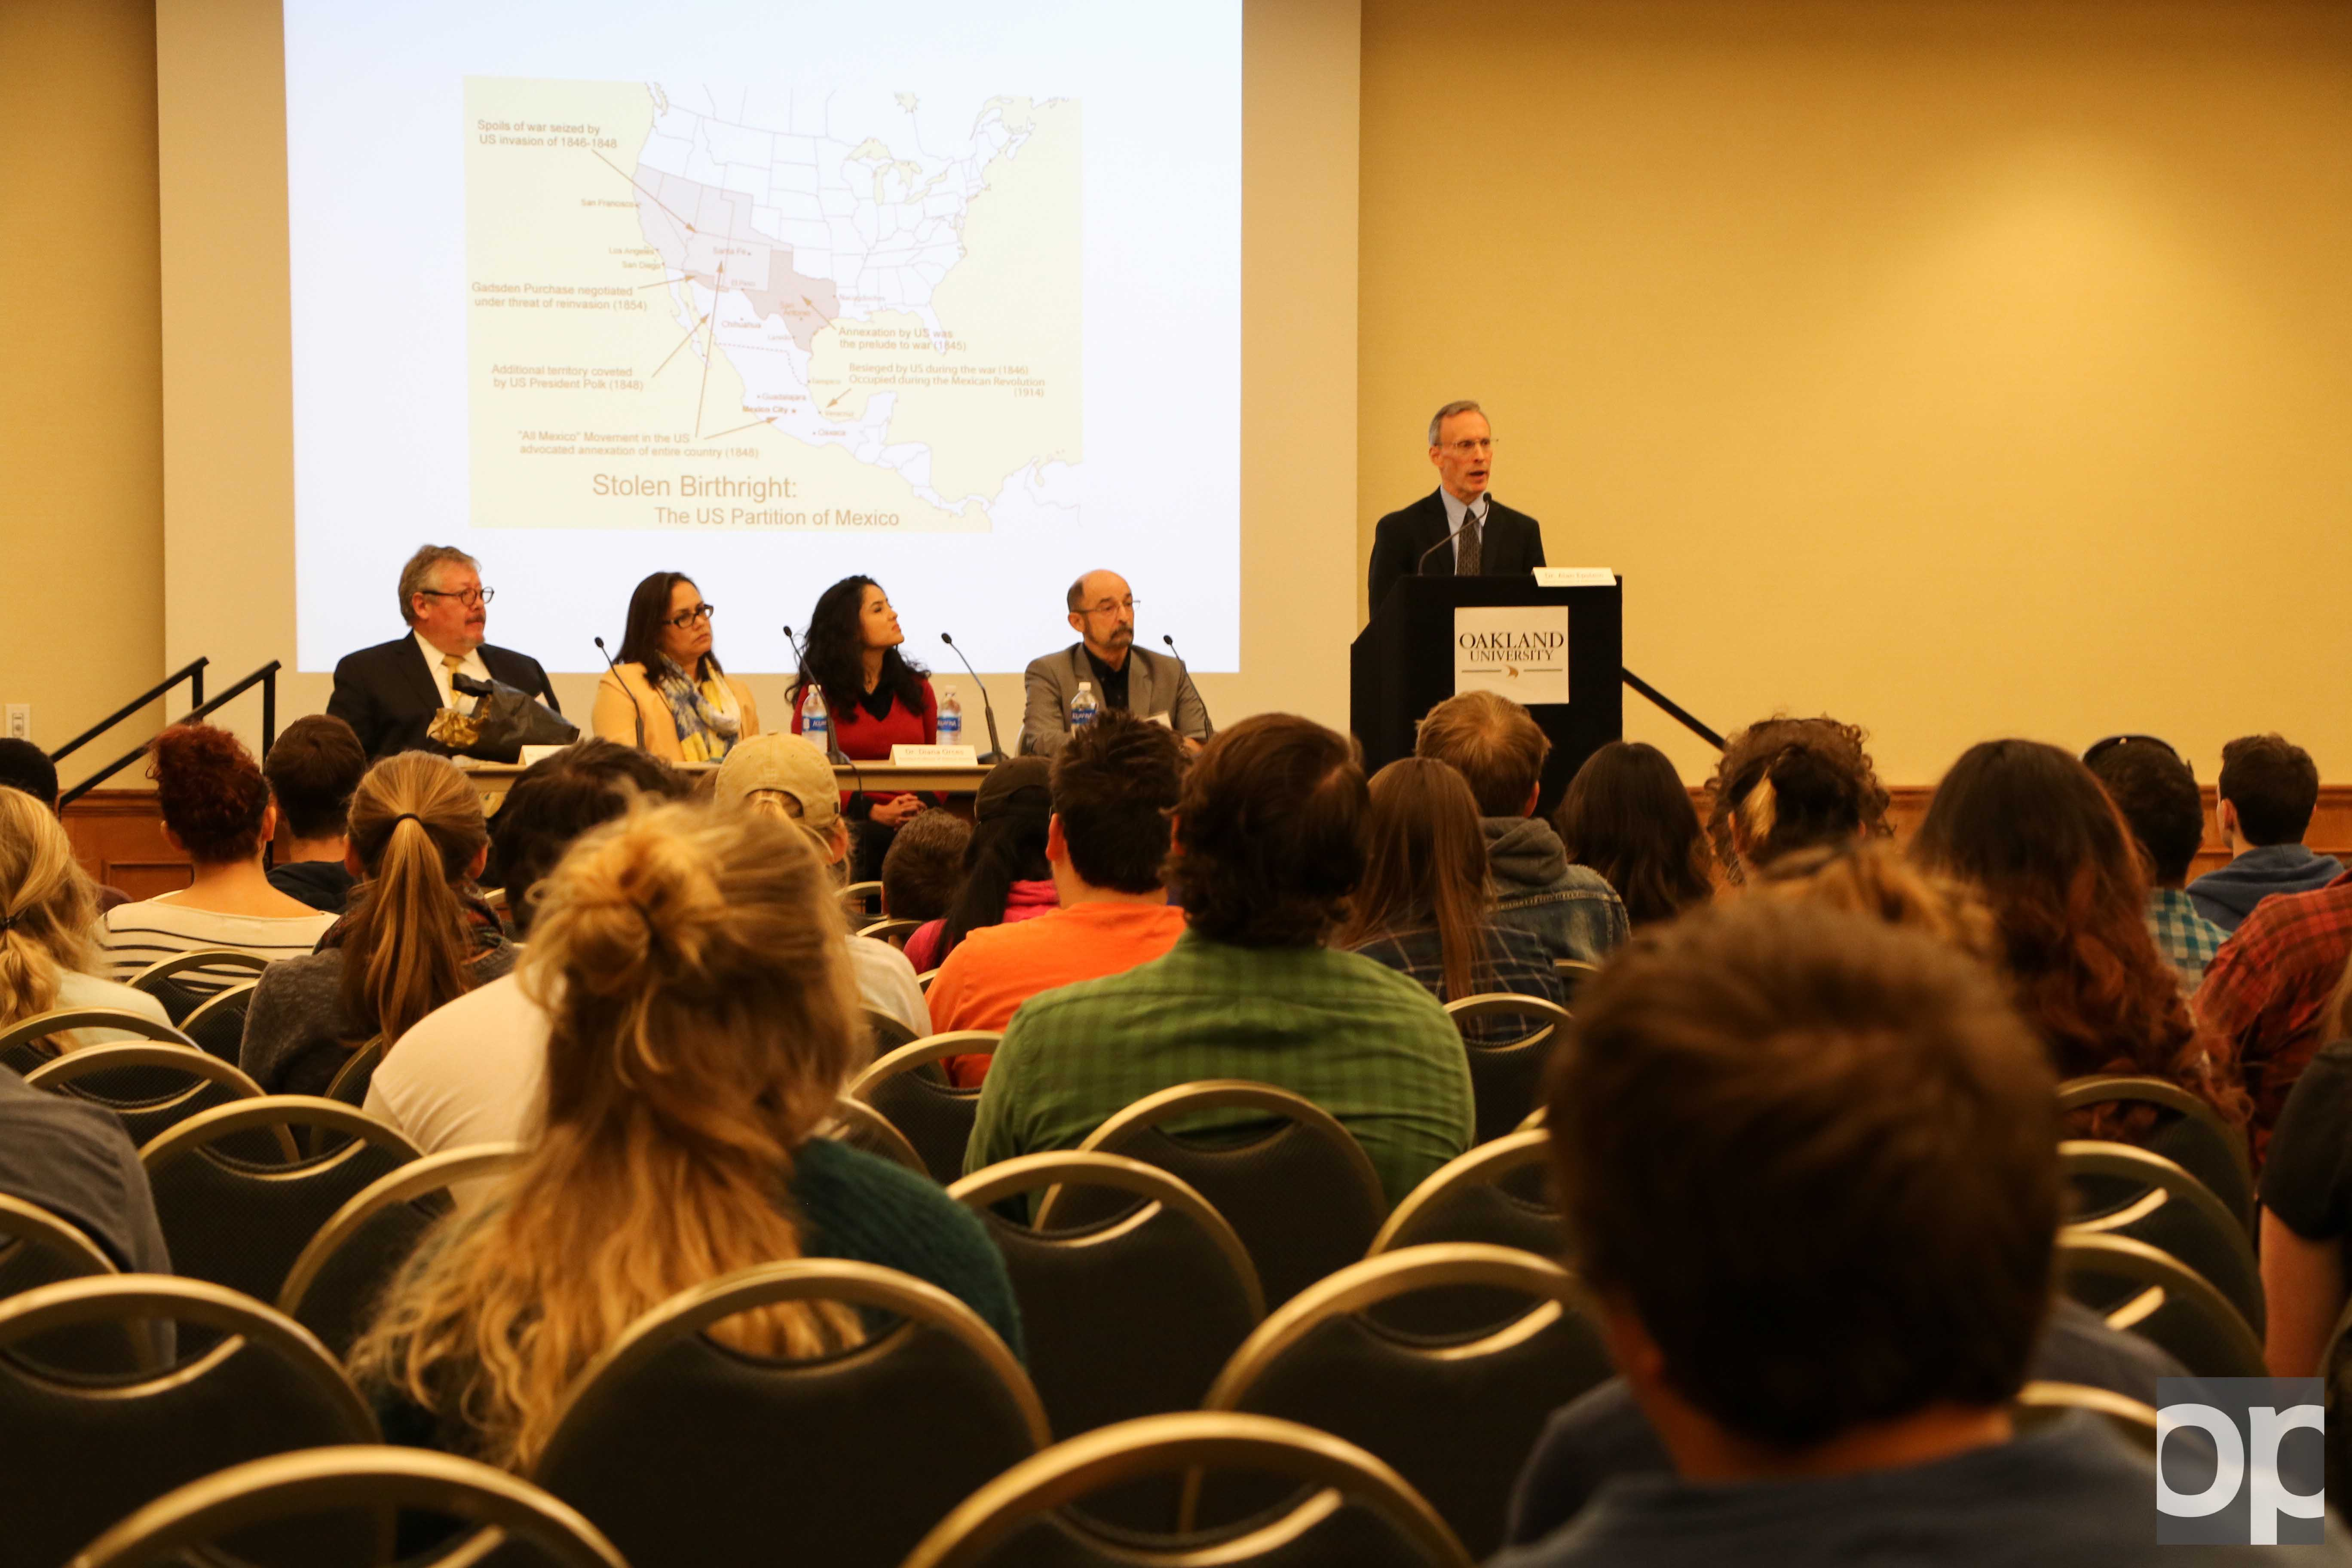 Oakland University Center for Multicultural Initiatives held an immigration debate on Wednesday, Oct. 12 as part of the Hispanic Celebration Month events.